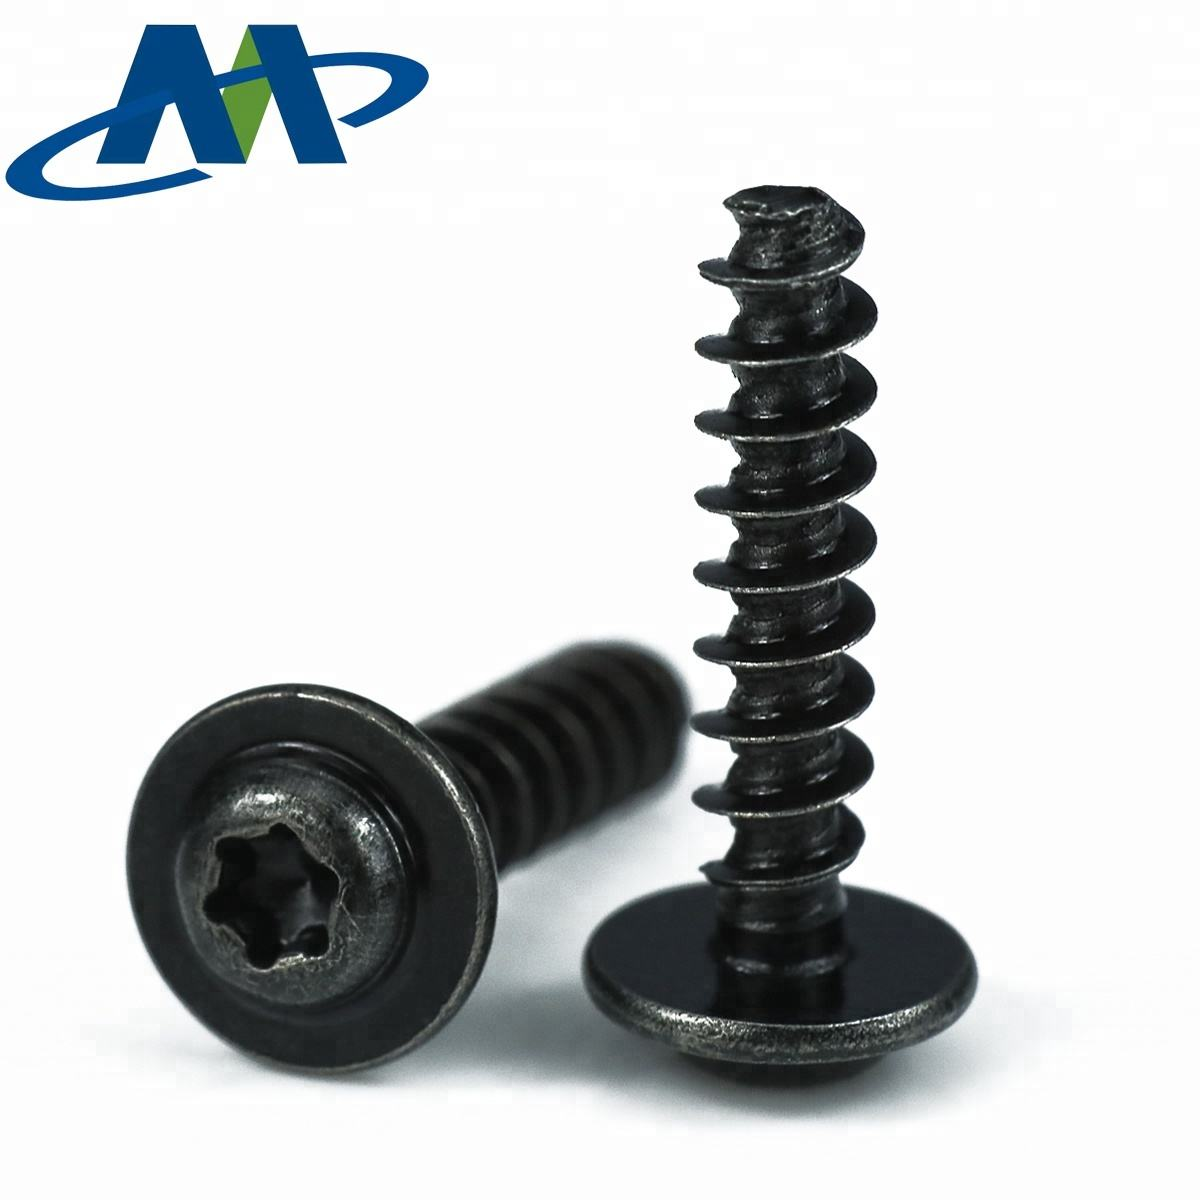 Black Zinc Plated Forming Thread Torx Pan head M3 PT screw for Thermoplastics